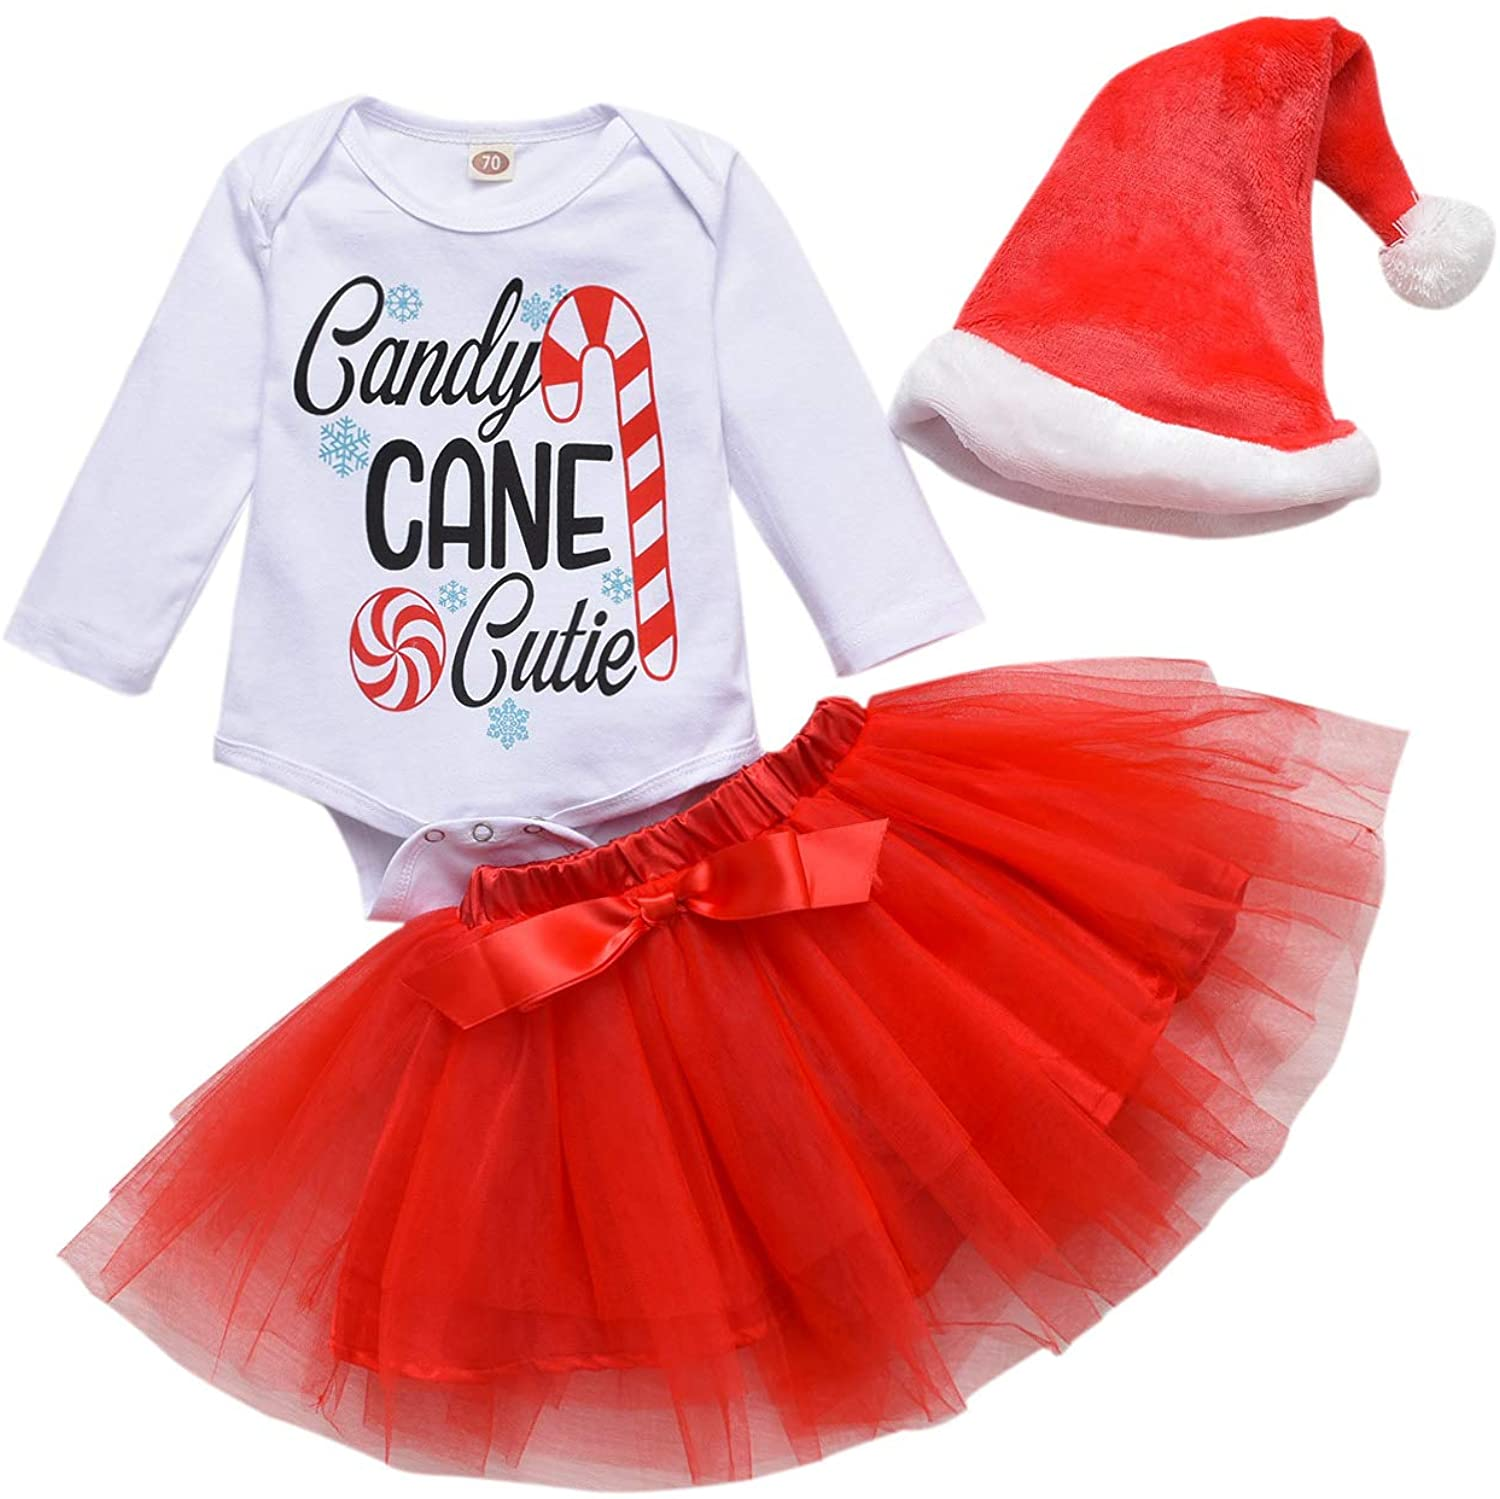 Christmas Outfits Toddler Baby Girl Skirts Sets Letters Romper + Tutu Dress + Xmas Hat Christmas Party Clothes